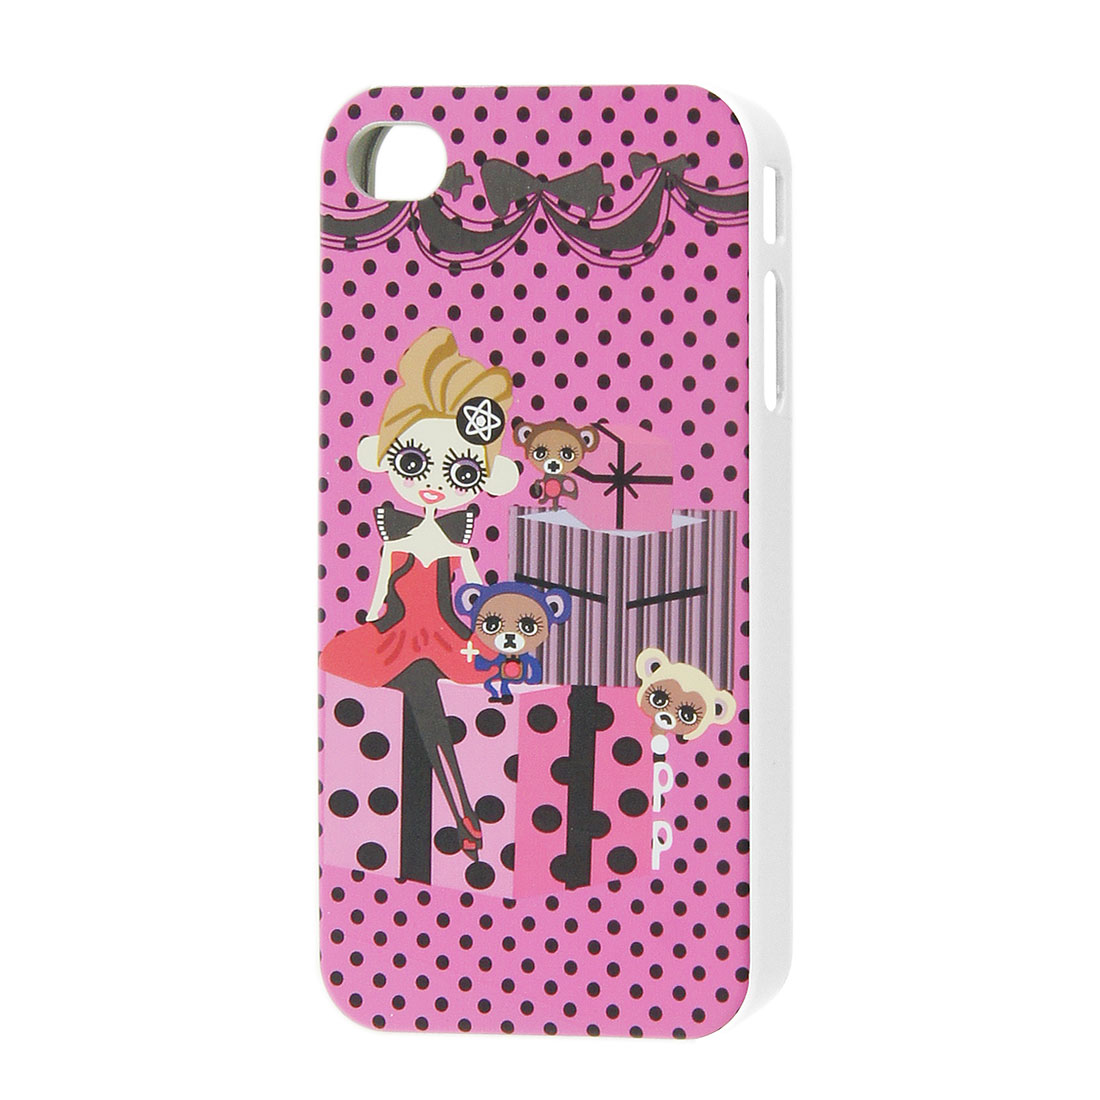 Pink Hard Plastic Dots Girl Printed Shell Case for iPhone 4 4S